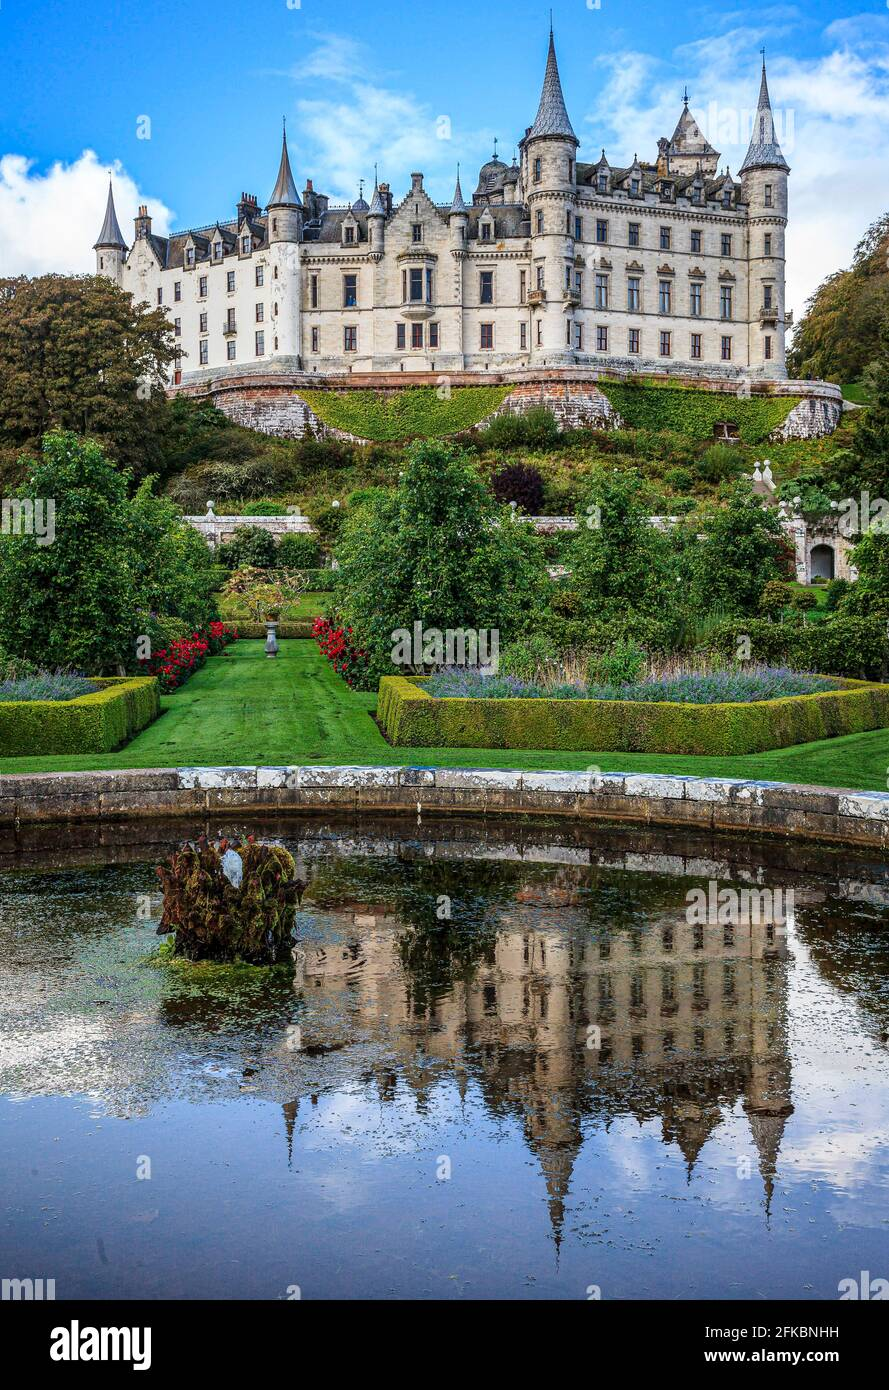 Dunrobin castle Golspie in the Scottish highlands is a fine example of a French chateau style castle. Scotland UK. Stock Photo